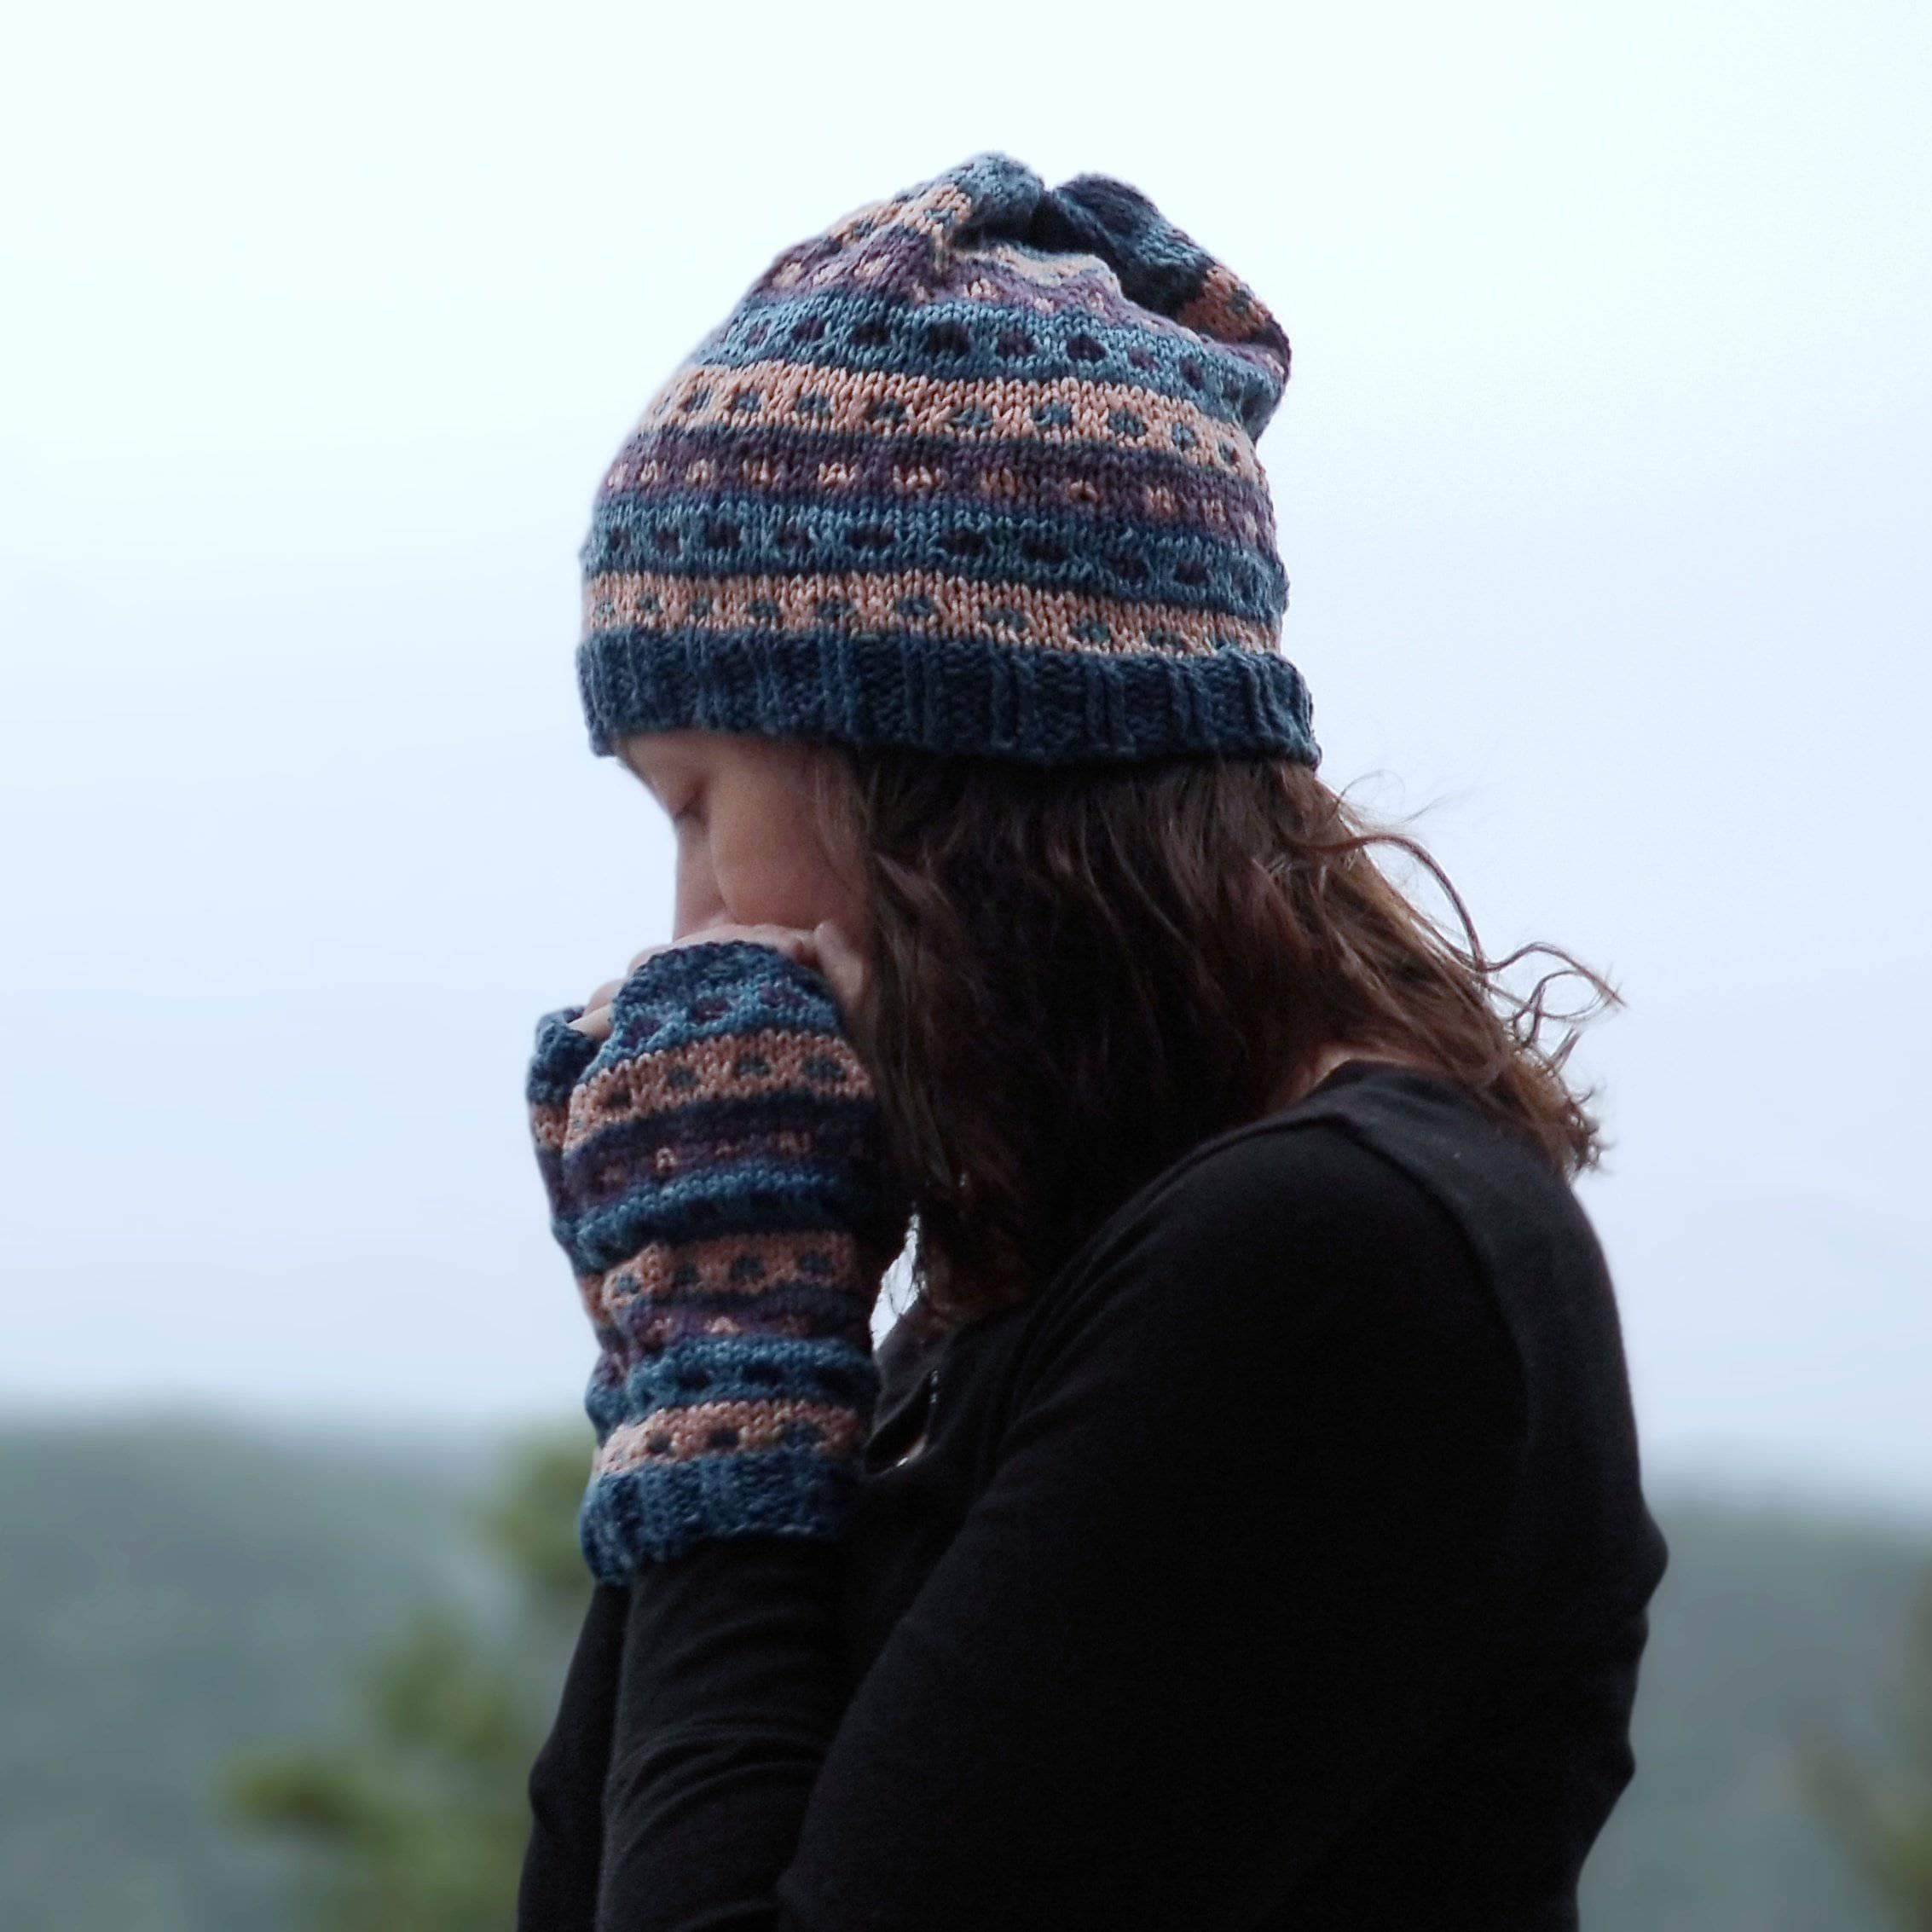 Today's free pattern download: Stripe a Dots hat and gloves